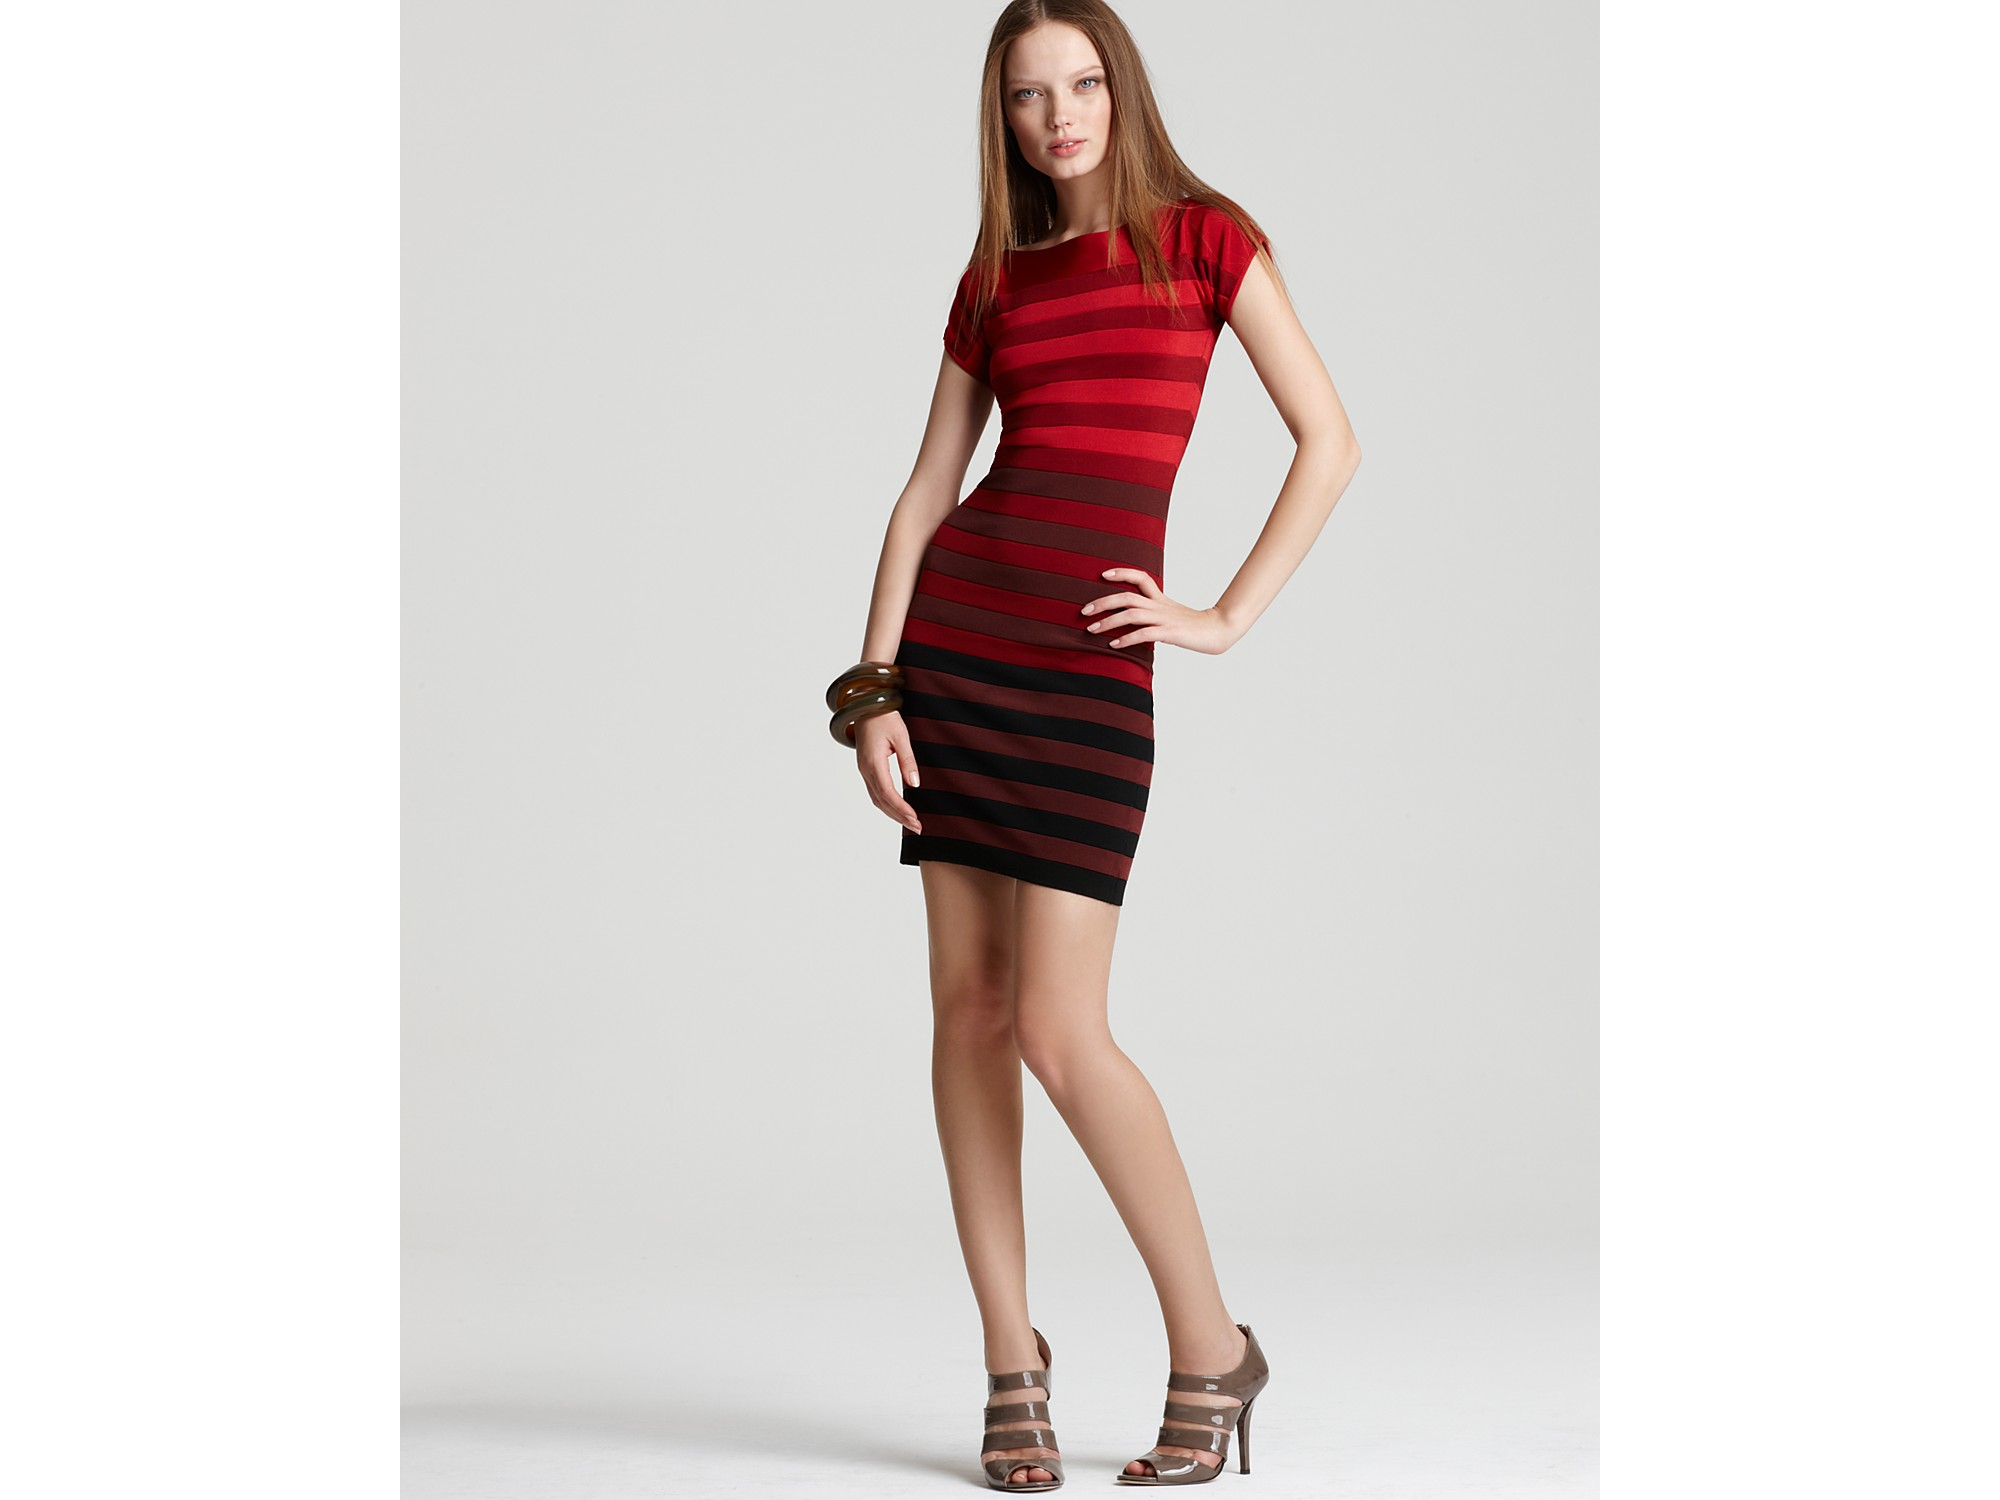 Blood red dress images